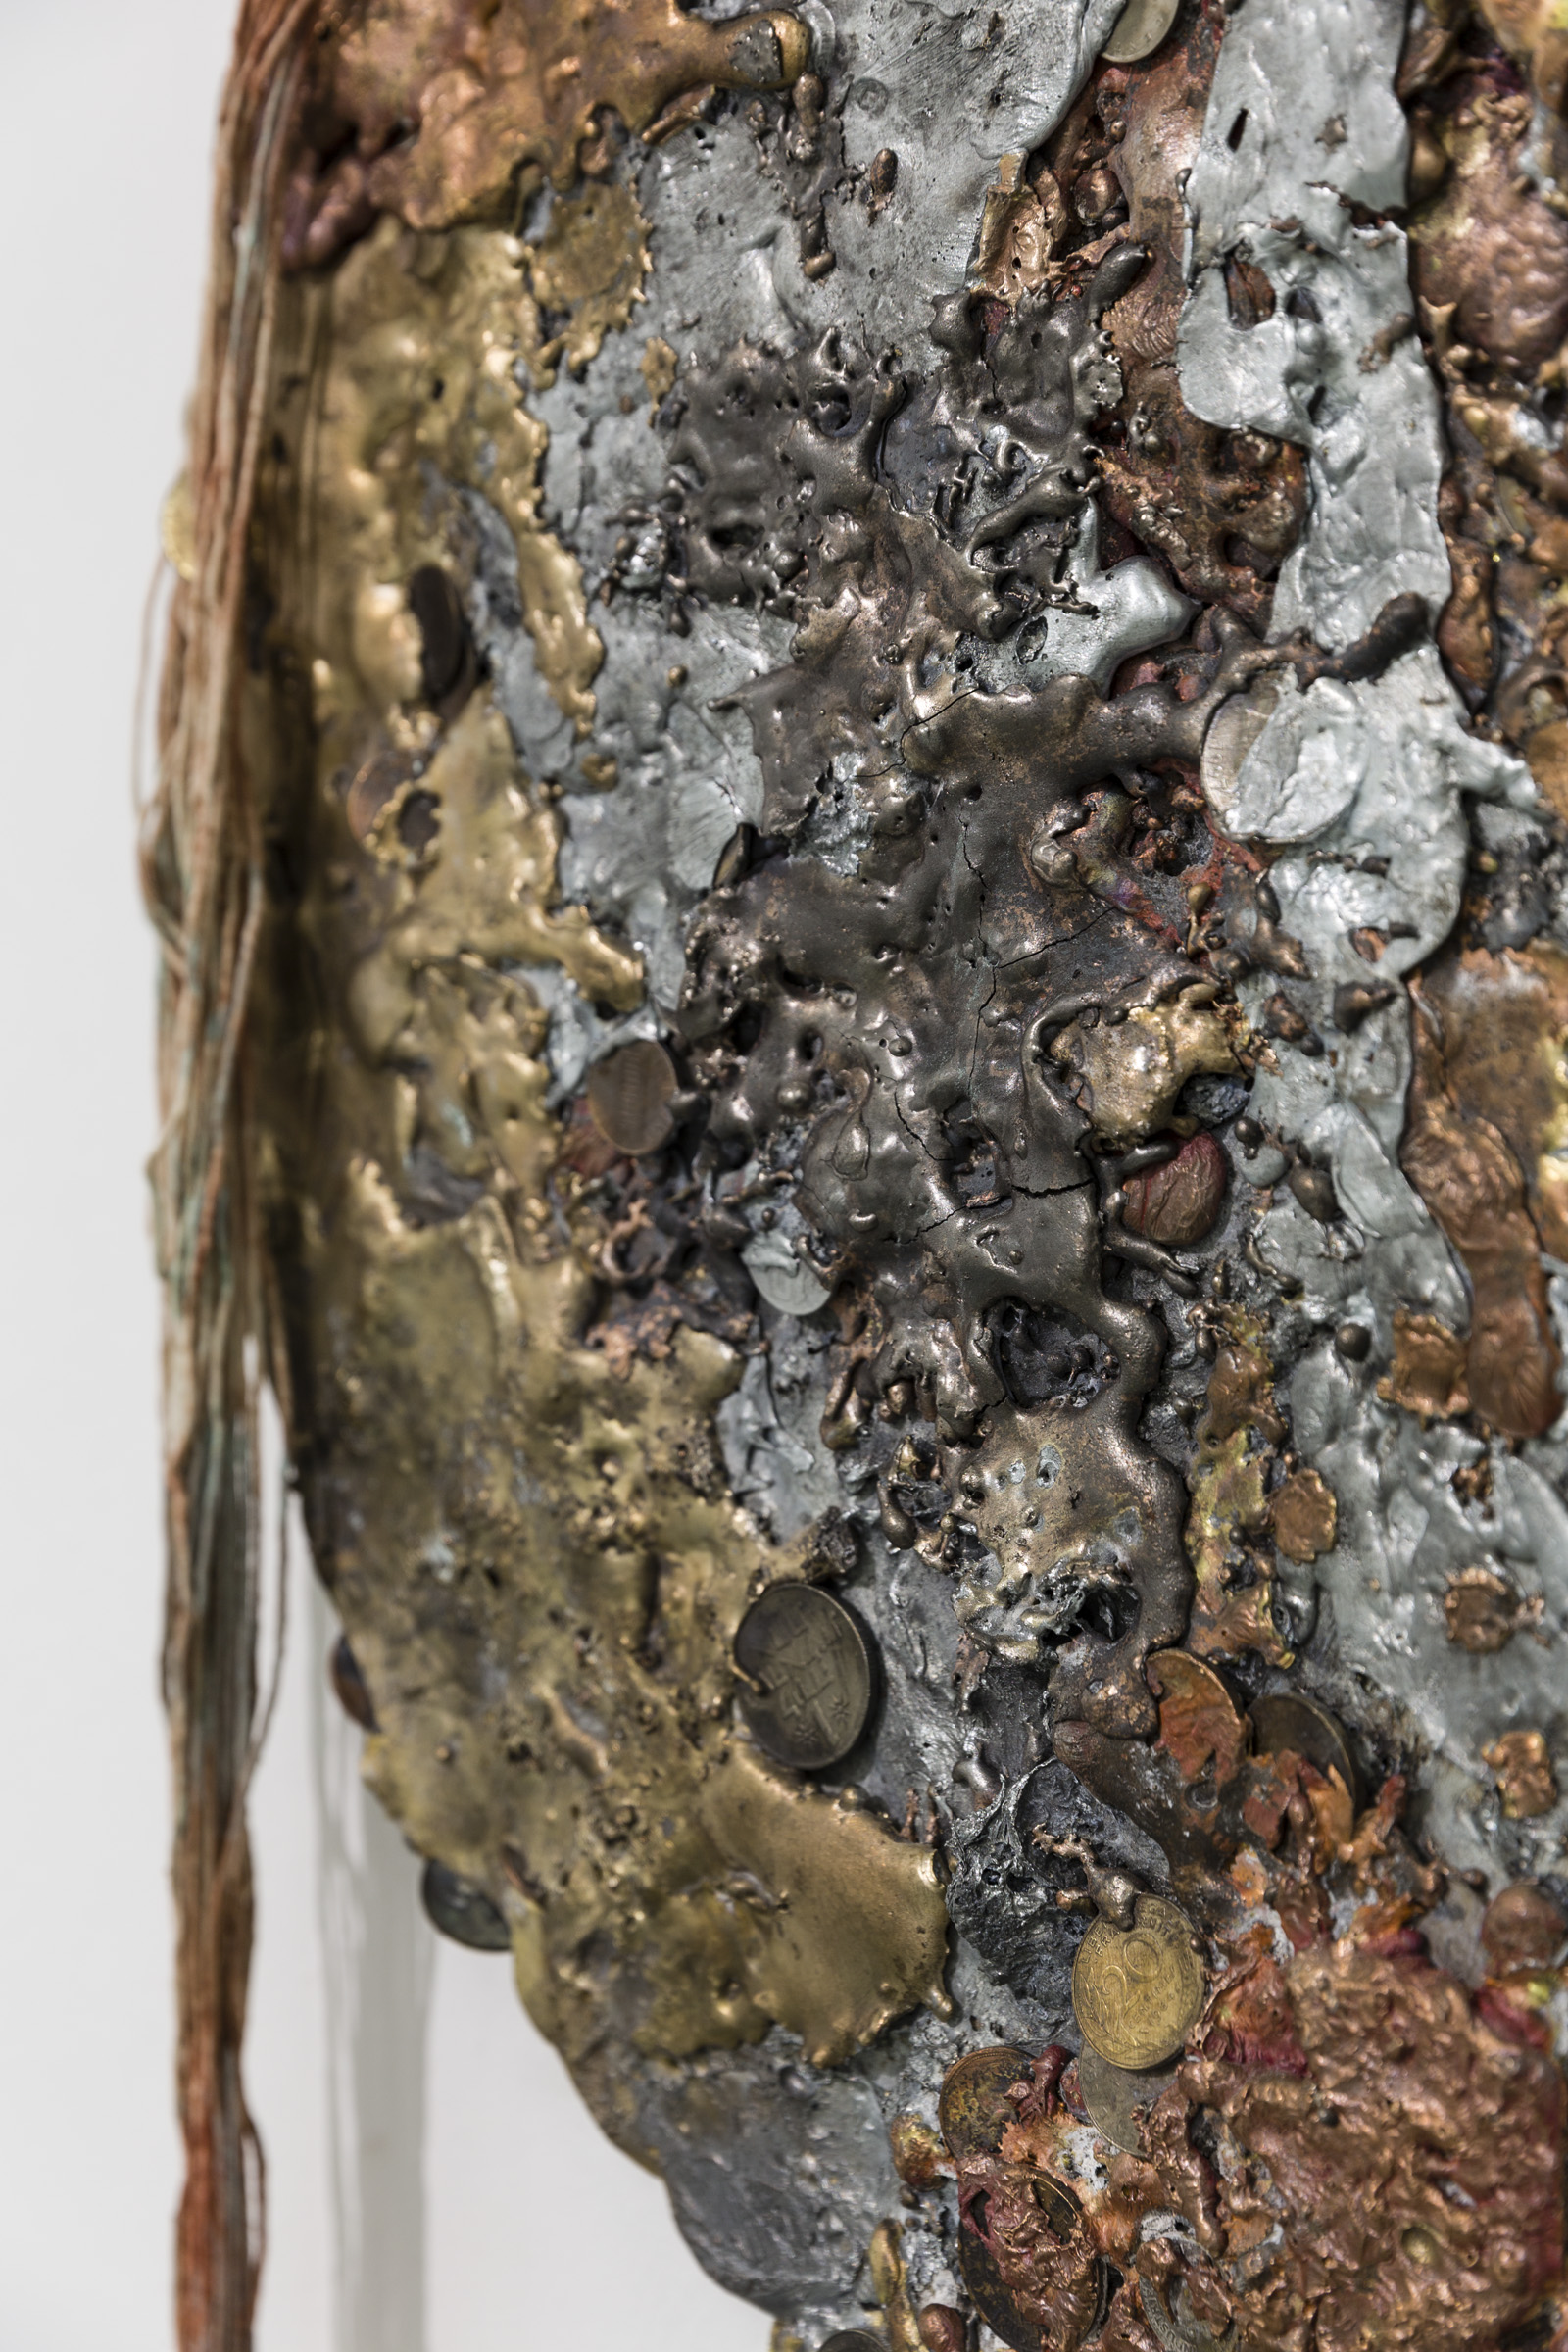 Jory Rabinovitz,  Given (Halved)  (detail), 2015, melted currency, unsold sculptures, Verdigris, iron oxide, zinc white, 48 x 48 x 72 in.